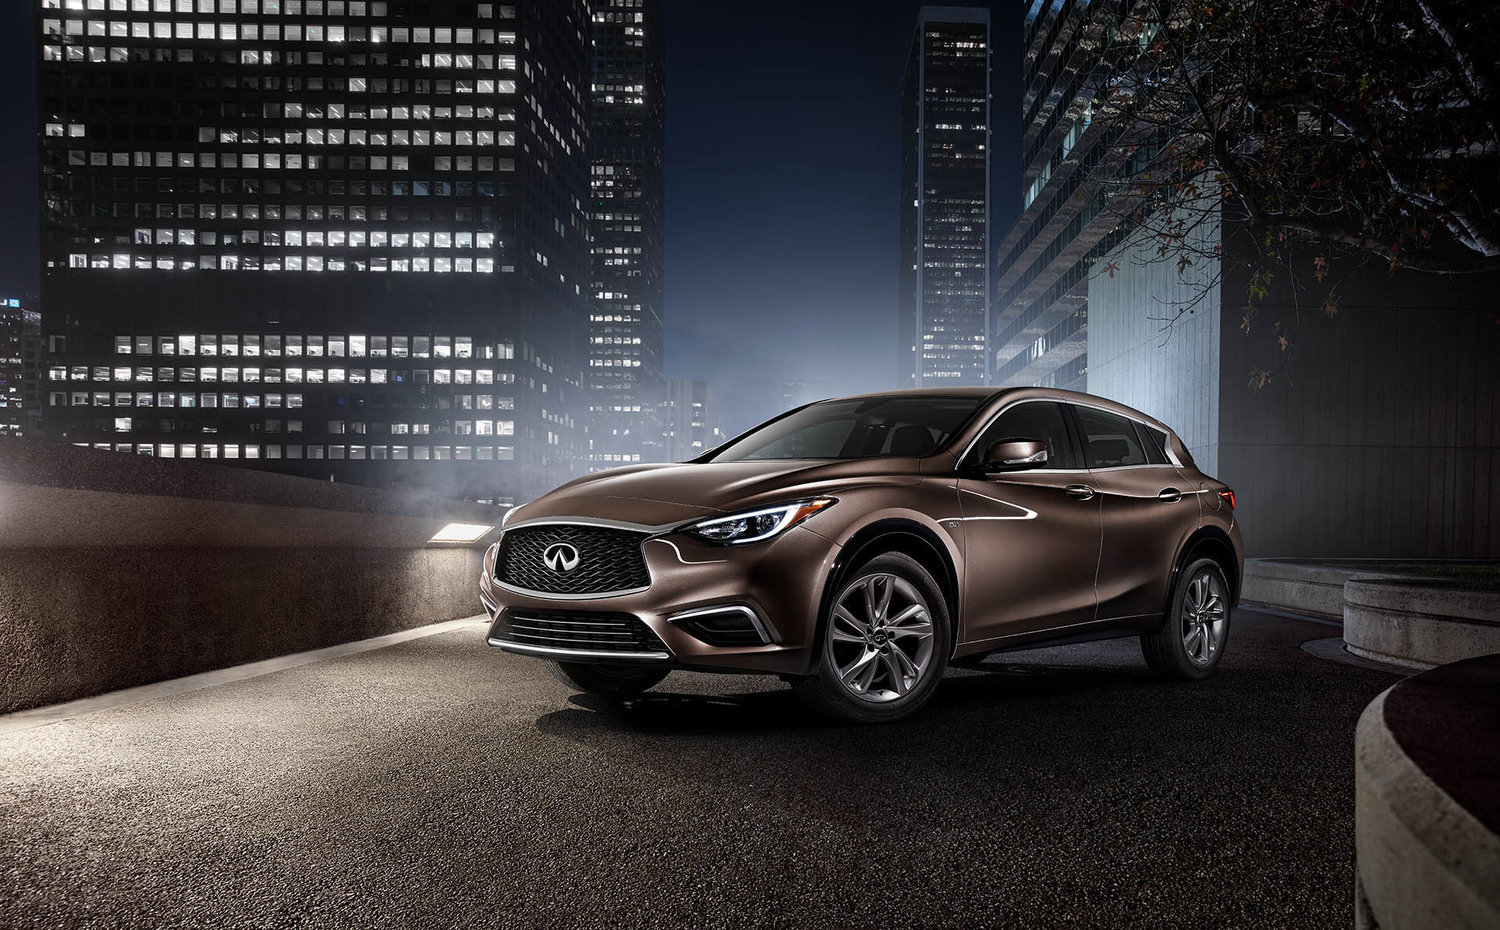 Copy of Infiniti QX30